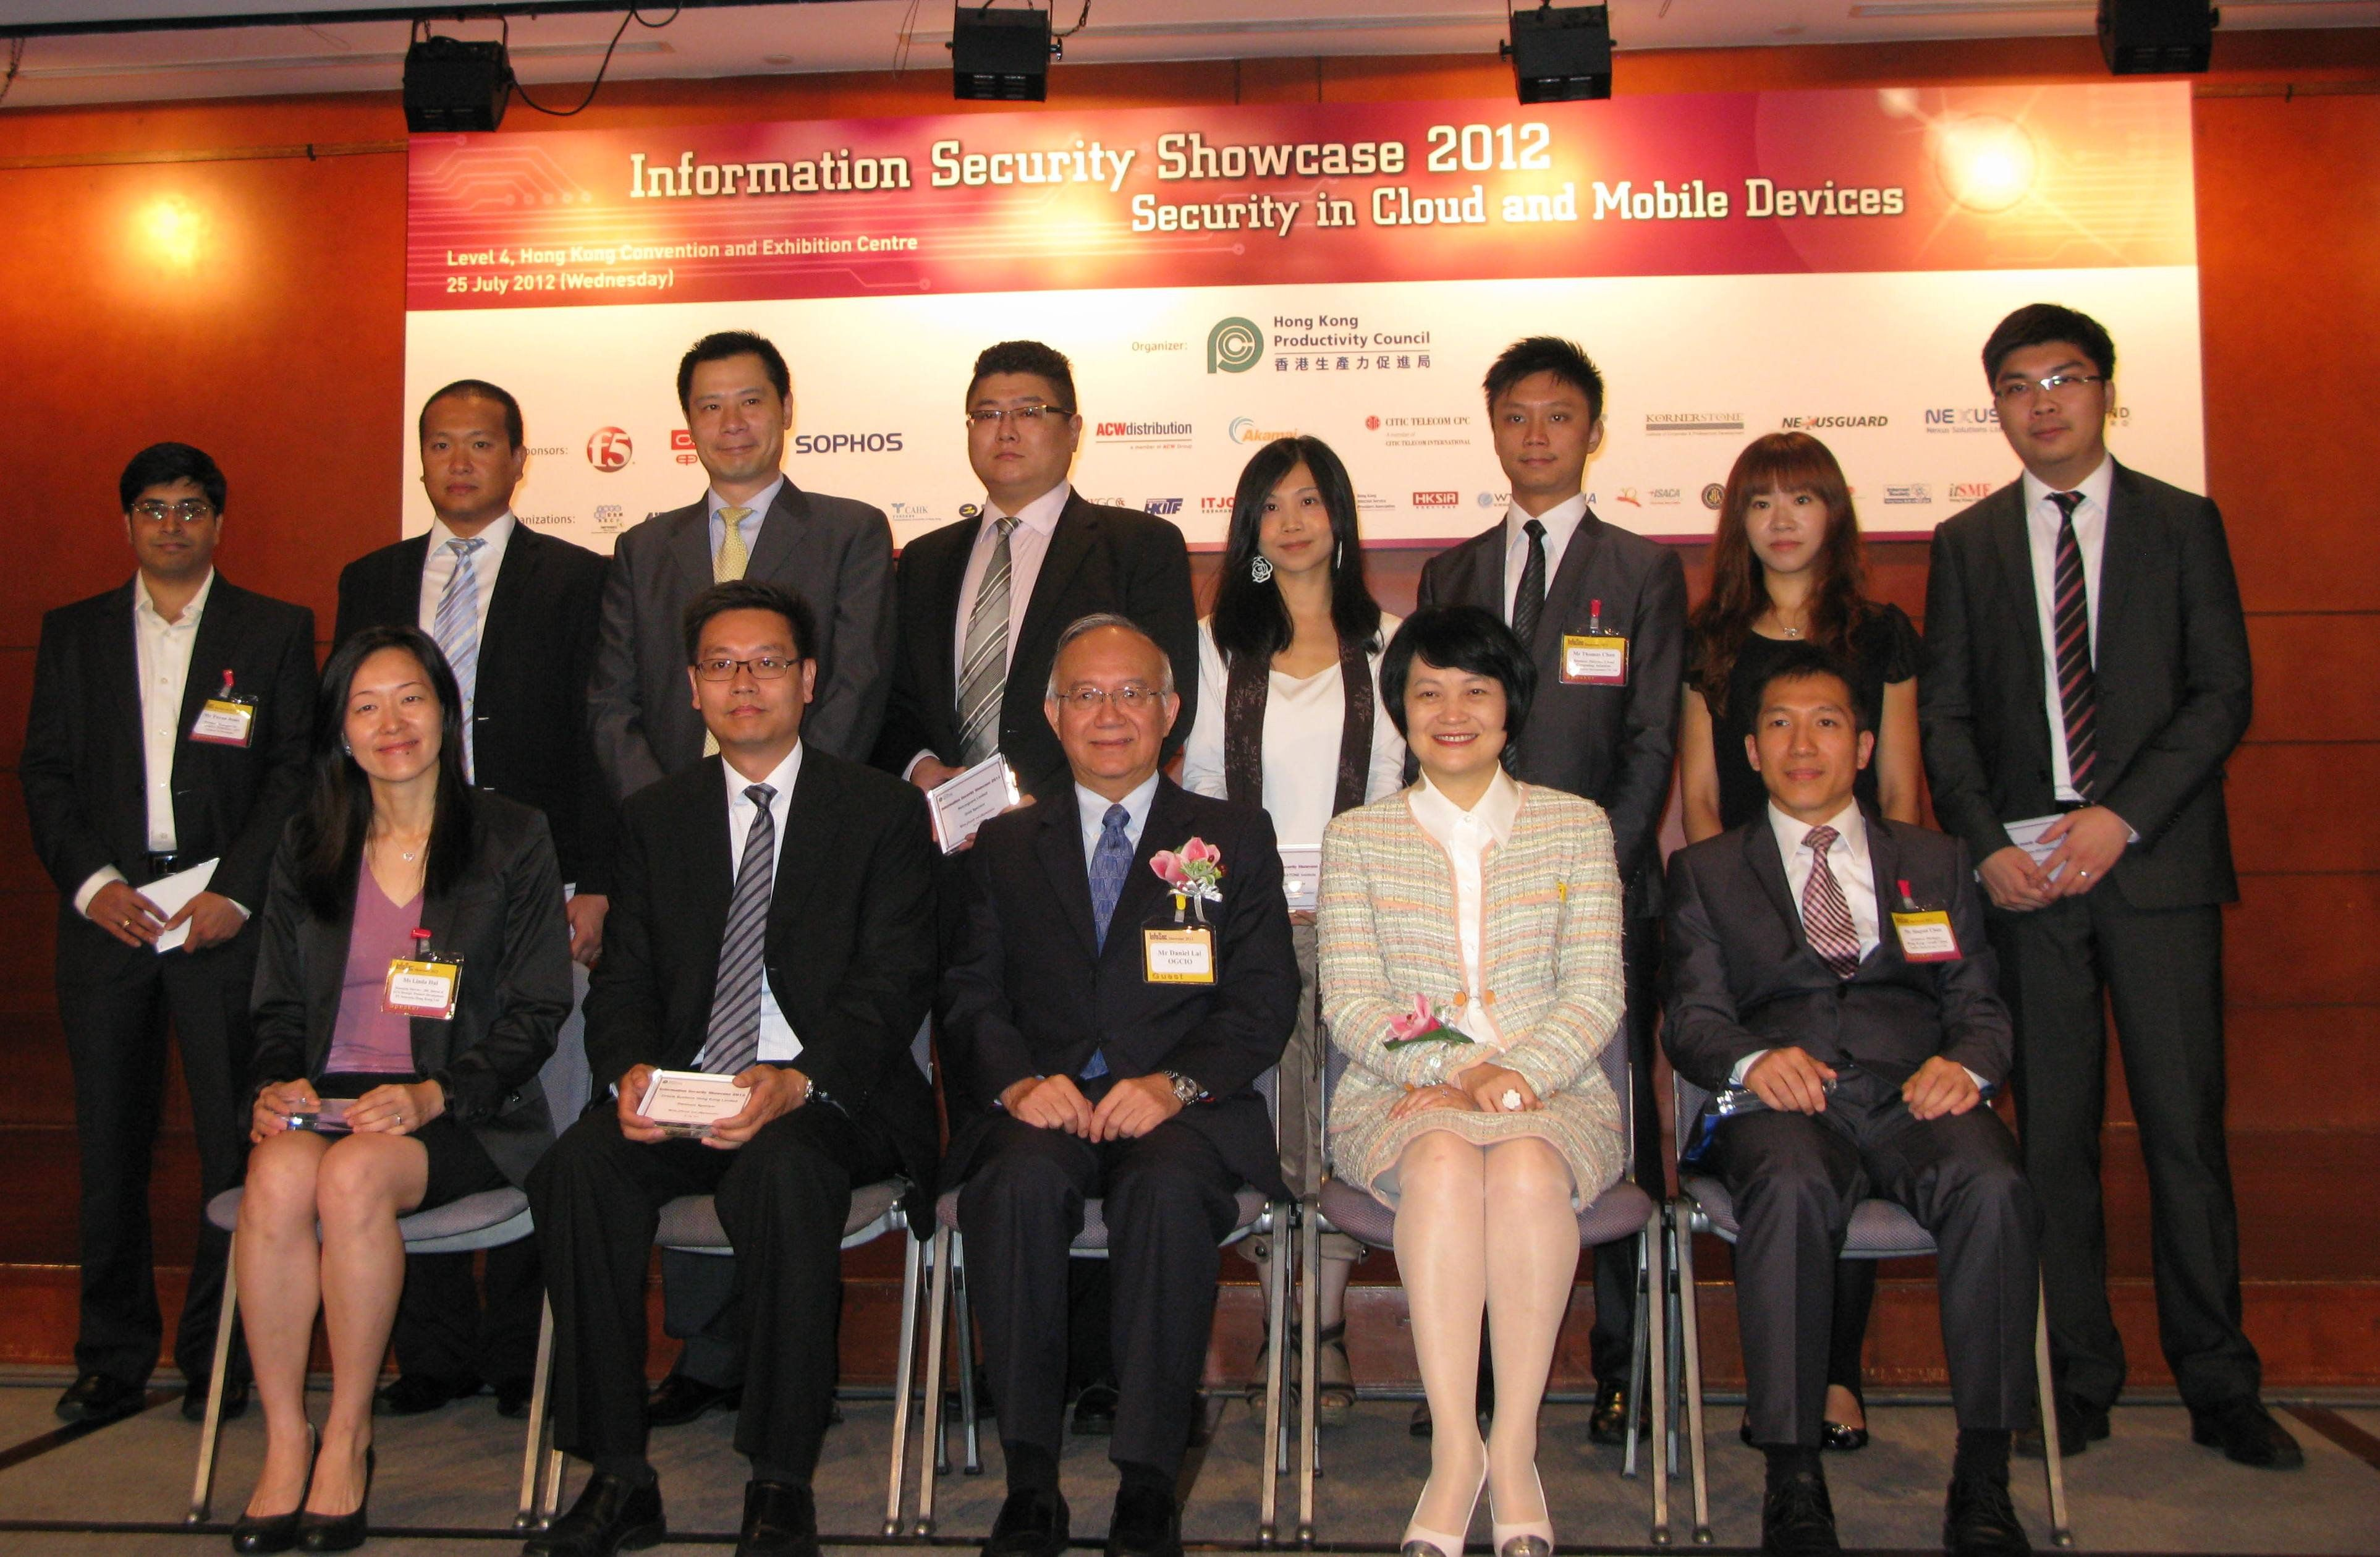 Mr Daniel Lai, Government Chief Information Officer of the HKSAR (front row, centre), and Mrs Agnes Mak, Executive Director of HKPC (front row, second from right), pose for a group photo with the event sponsors